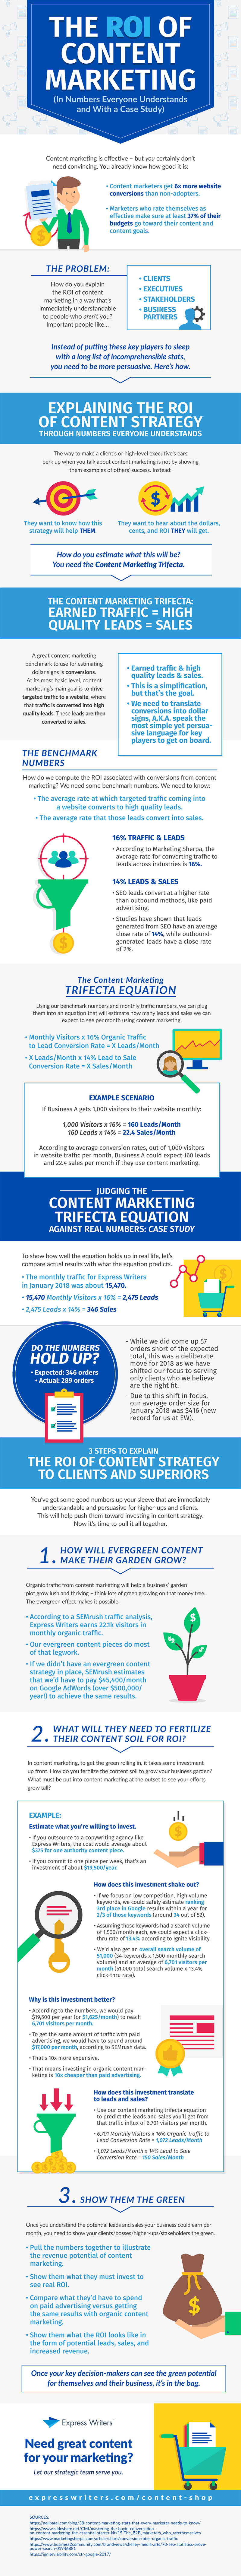 Infographic lists key content marketing ROI measures